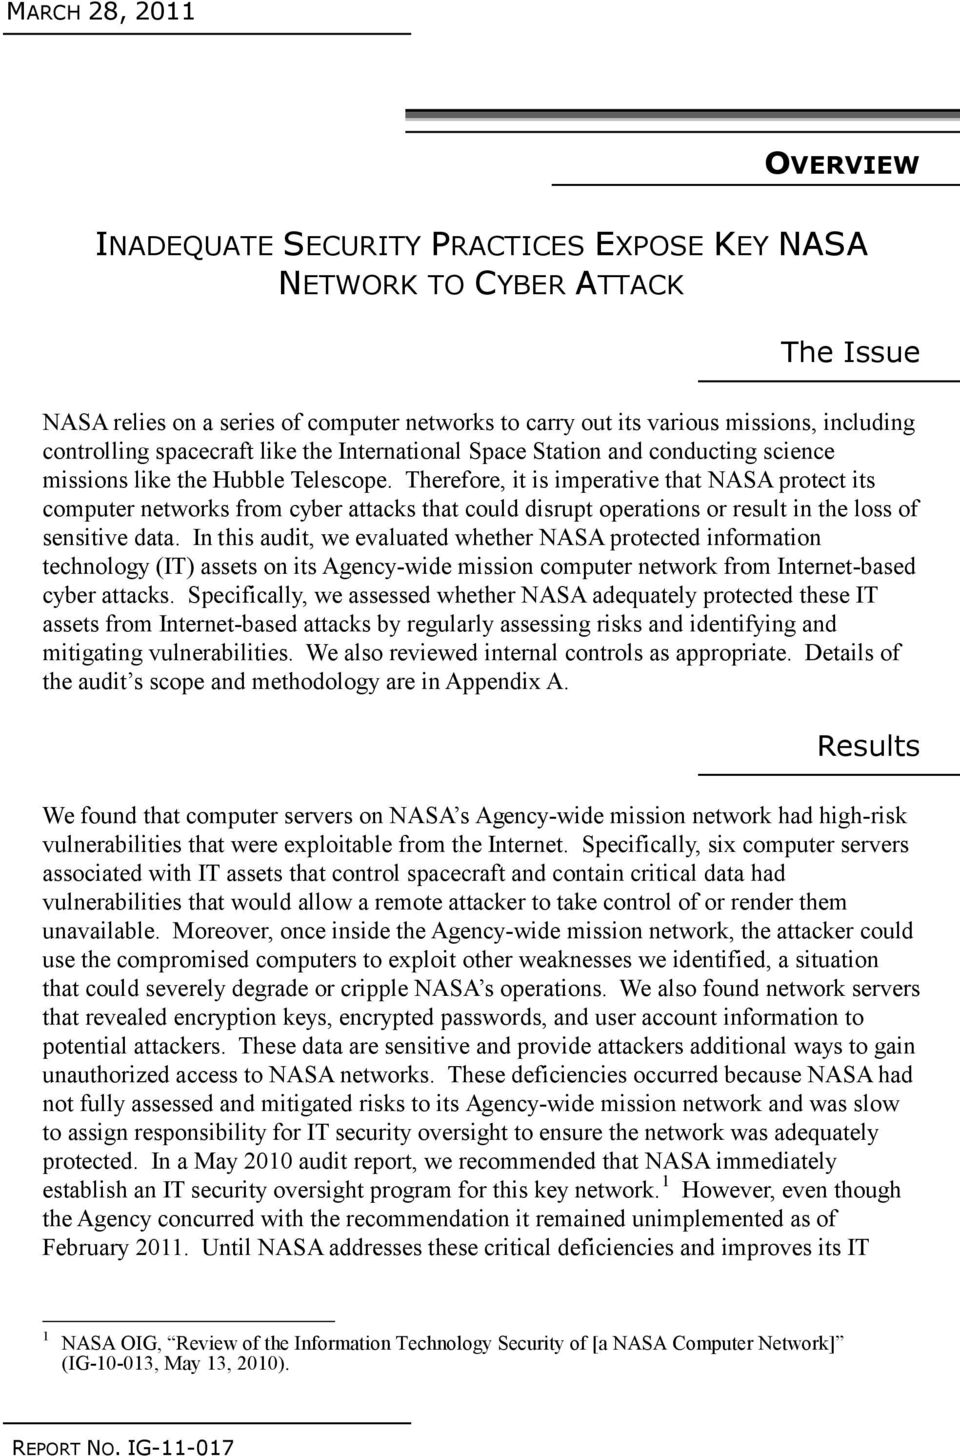 Therefore, it is imperative that NASA protect its computer networks from cyber attacks that could disrupt operations or result in the loss of sensitive data.